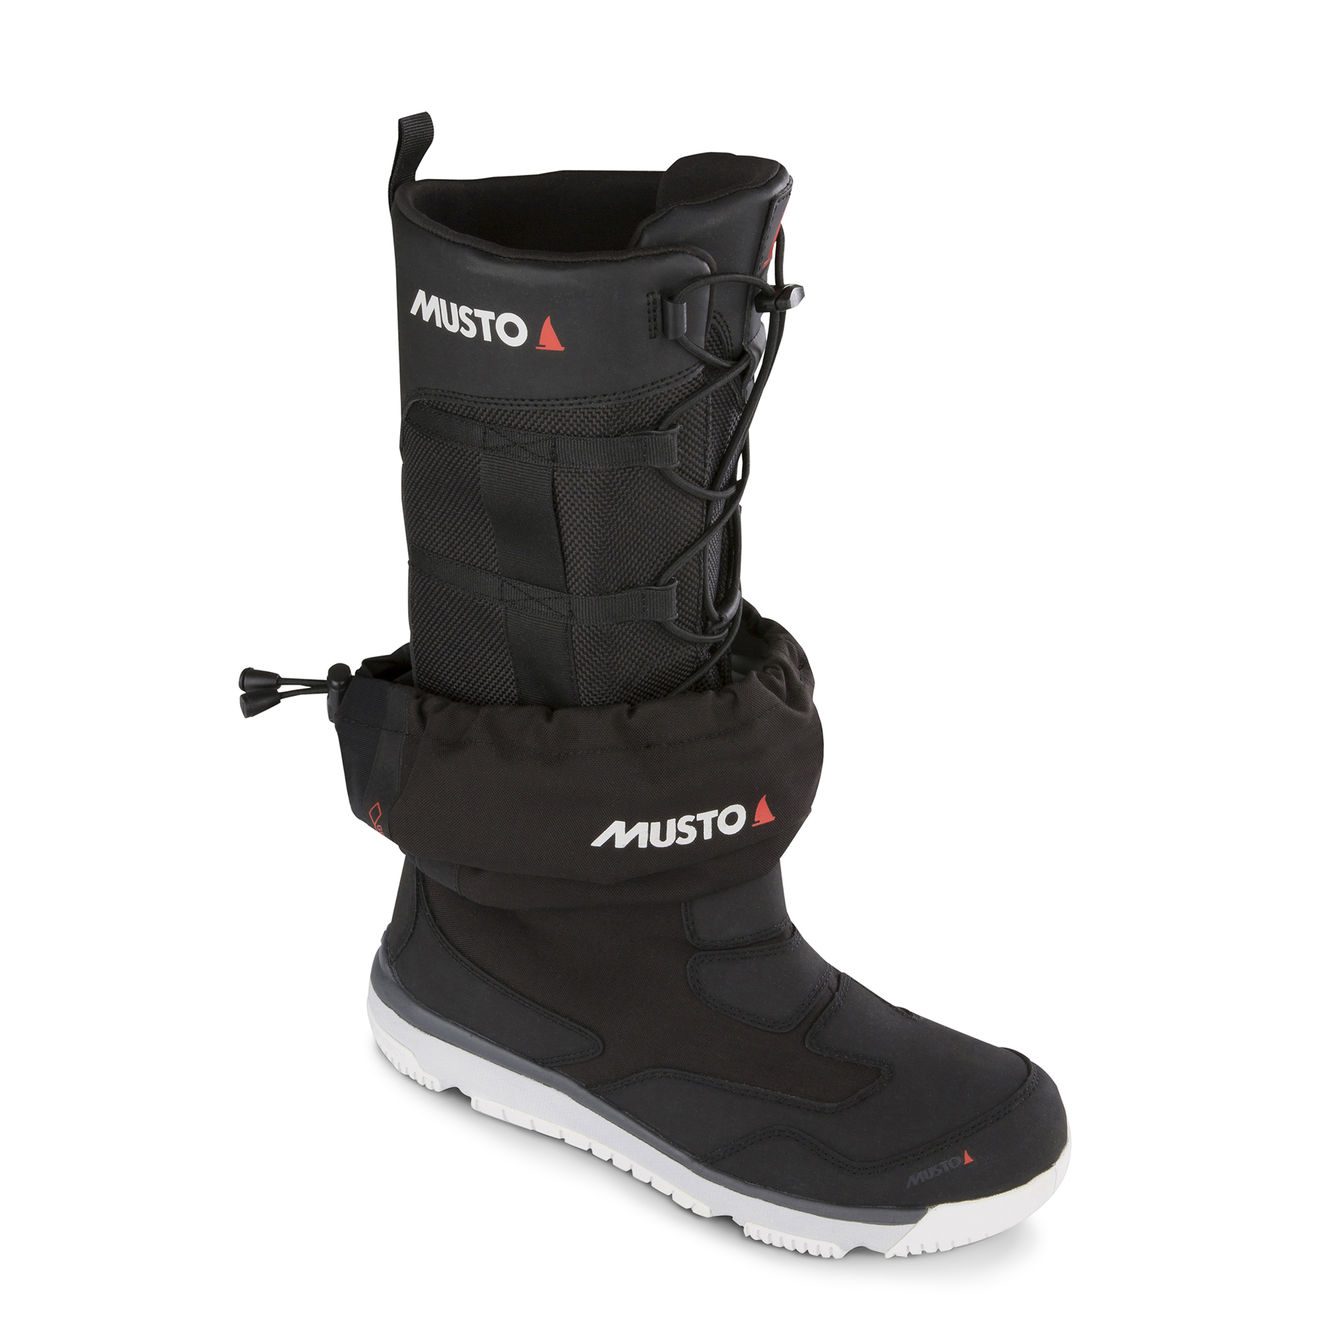 racer sailing boots